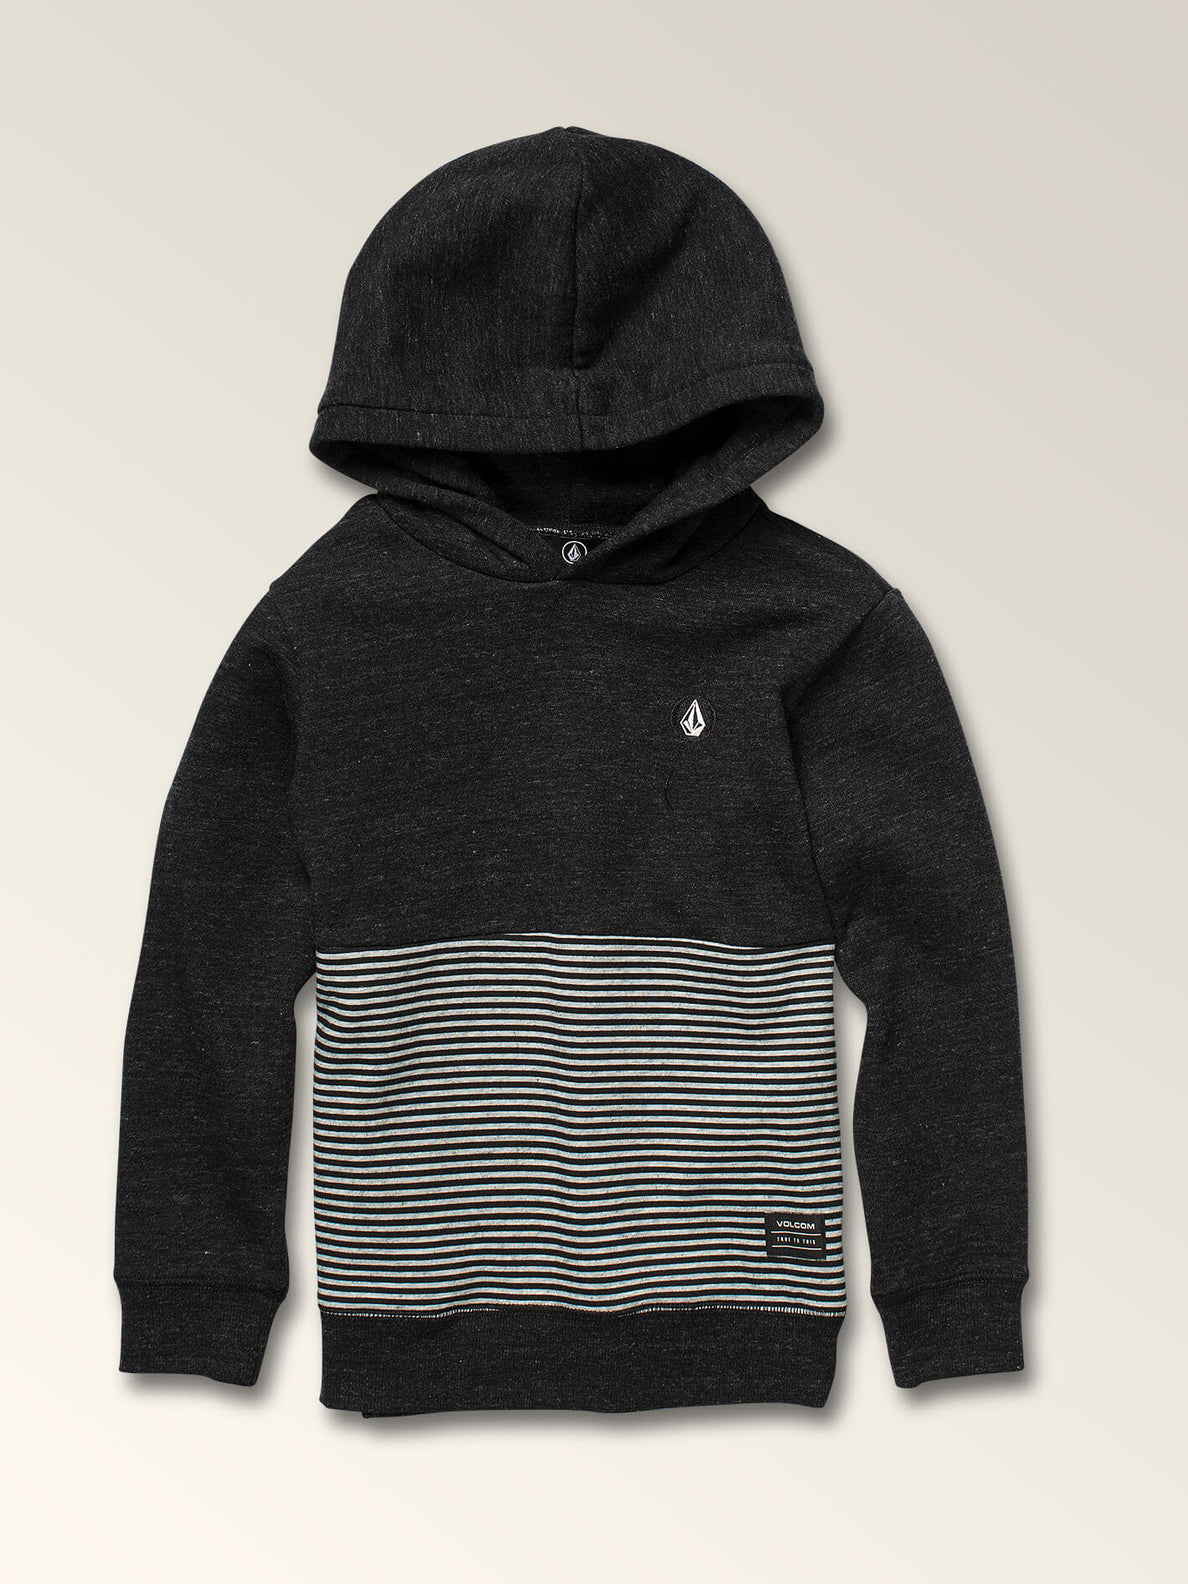 Little Boys Maddock Pullover Hoodie In Asphalt Black, Front View